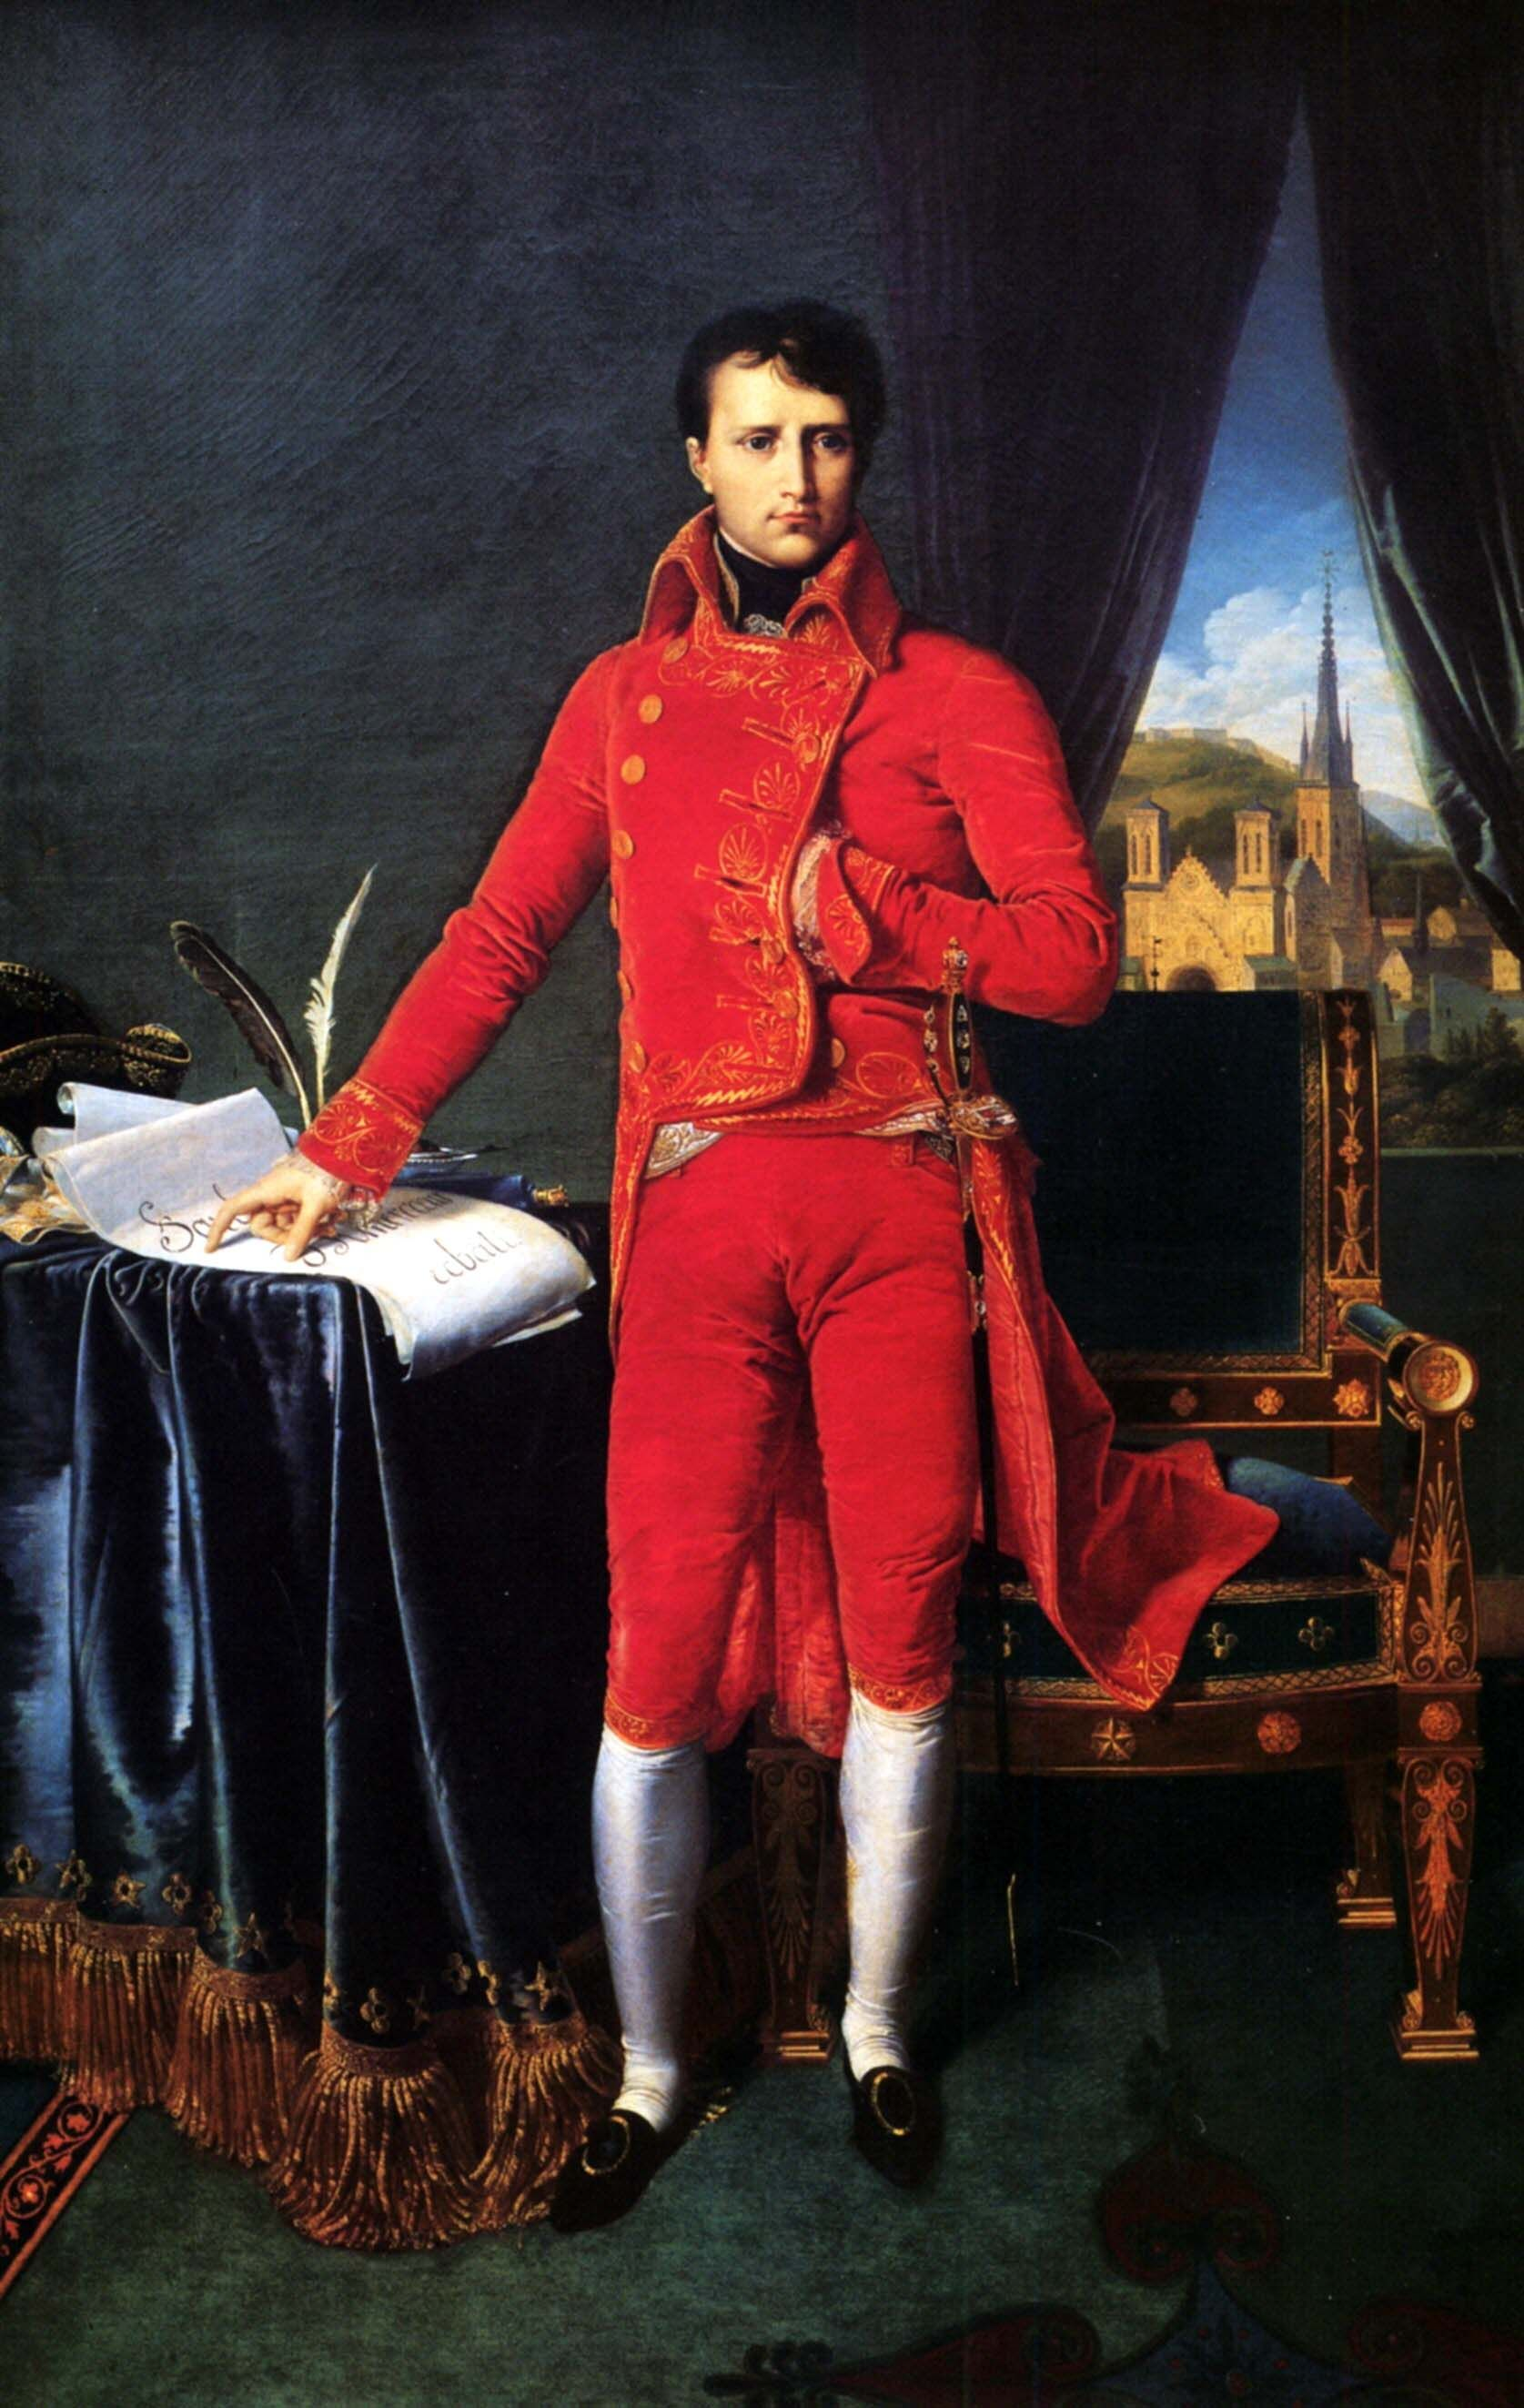 napoleon bonaparte in the uniform of the first consul 1804 by napoleon bonaparte in the uniform of the first consul 1804 by jean e